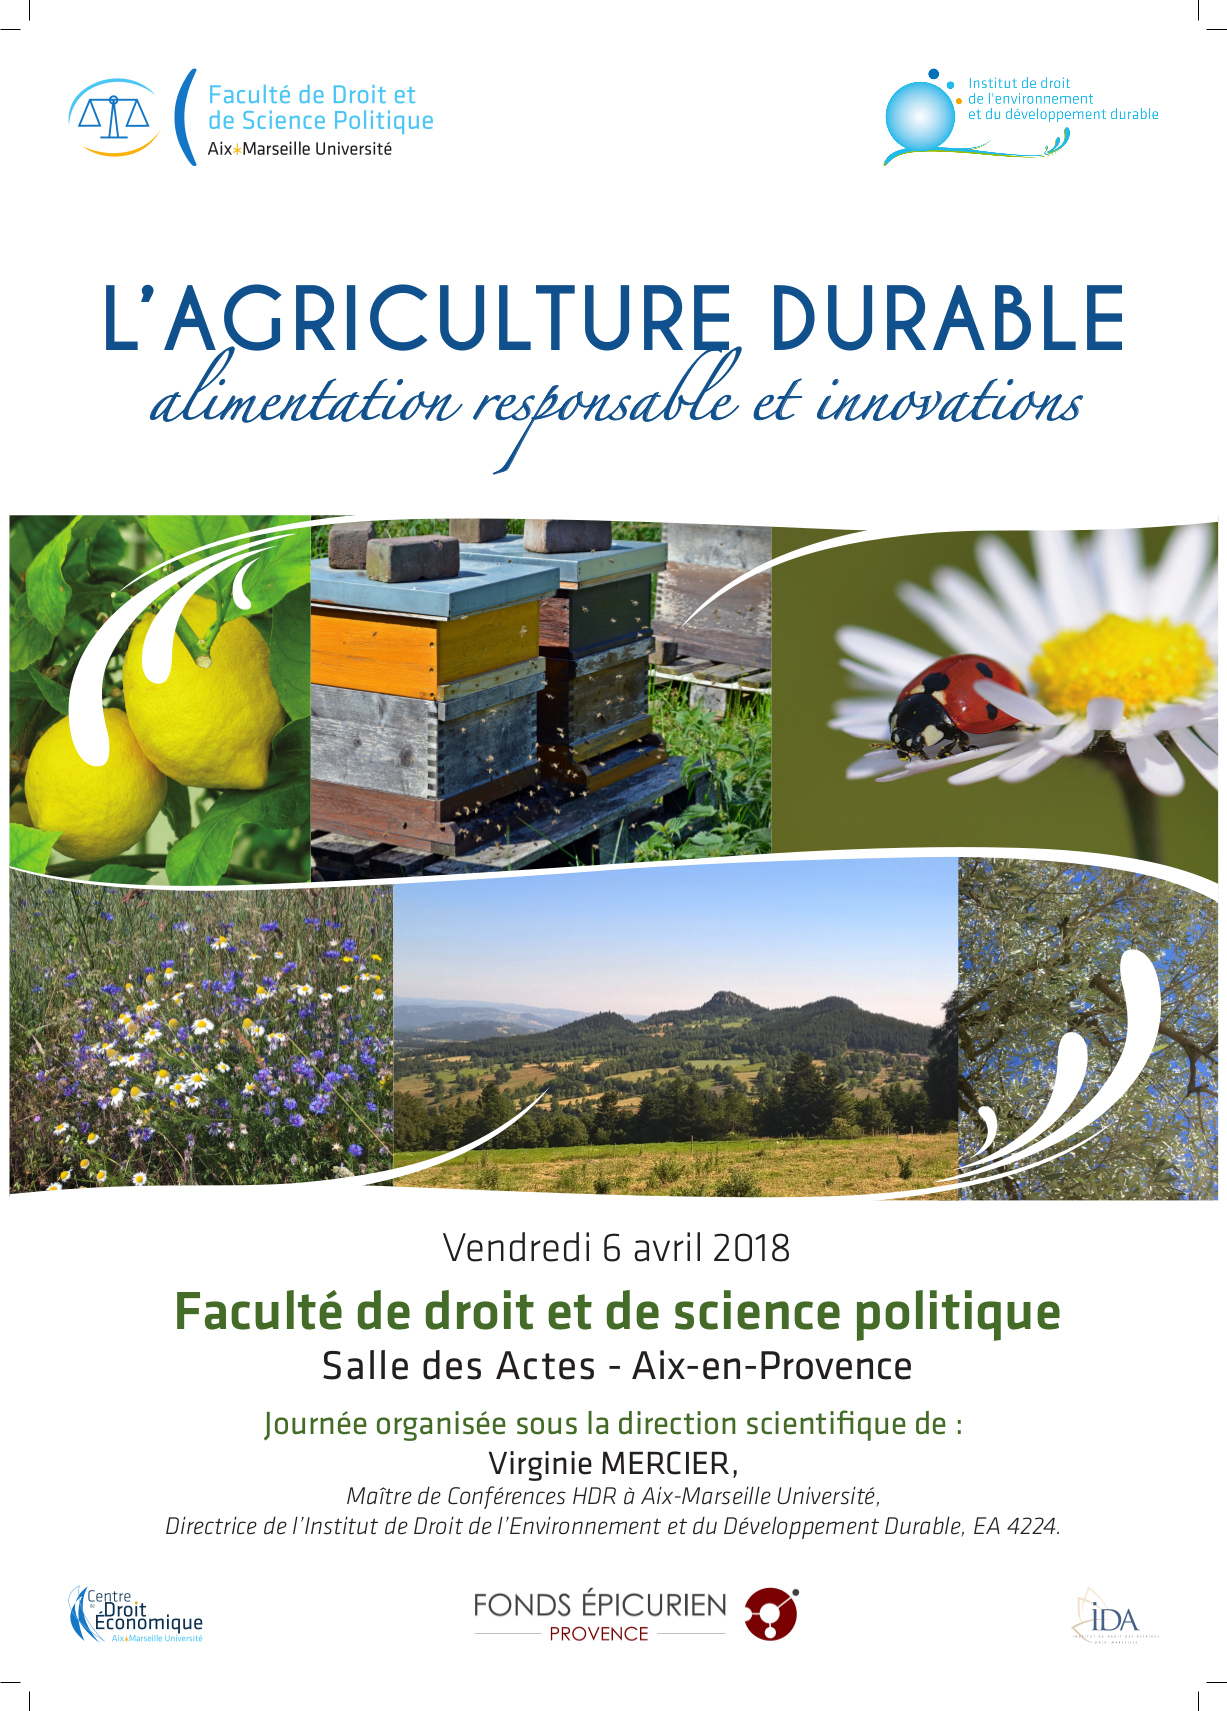 Colloque Agriculture Durable 6 Avril 2018 Affiche